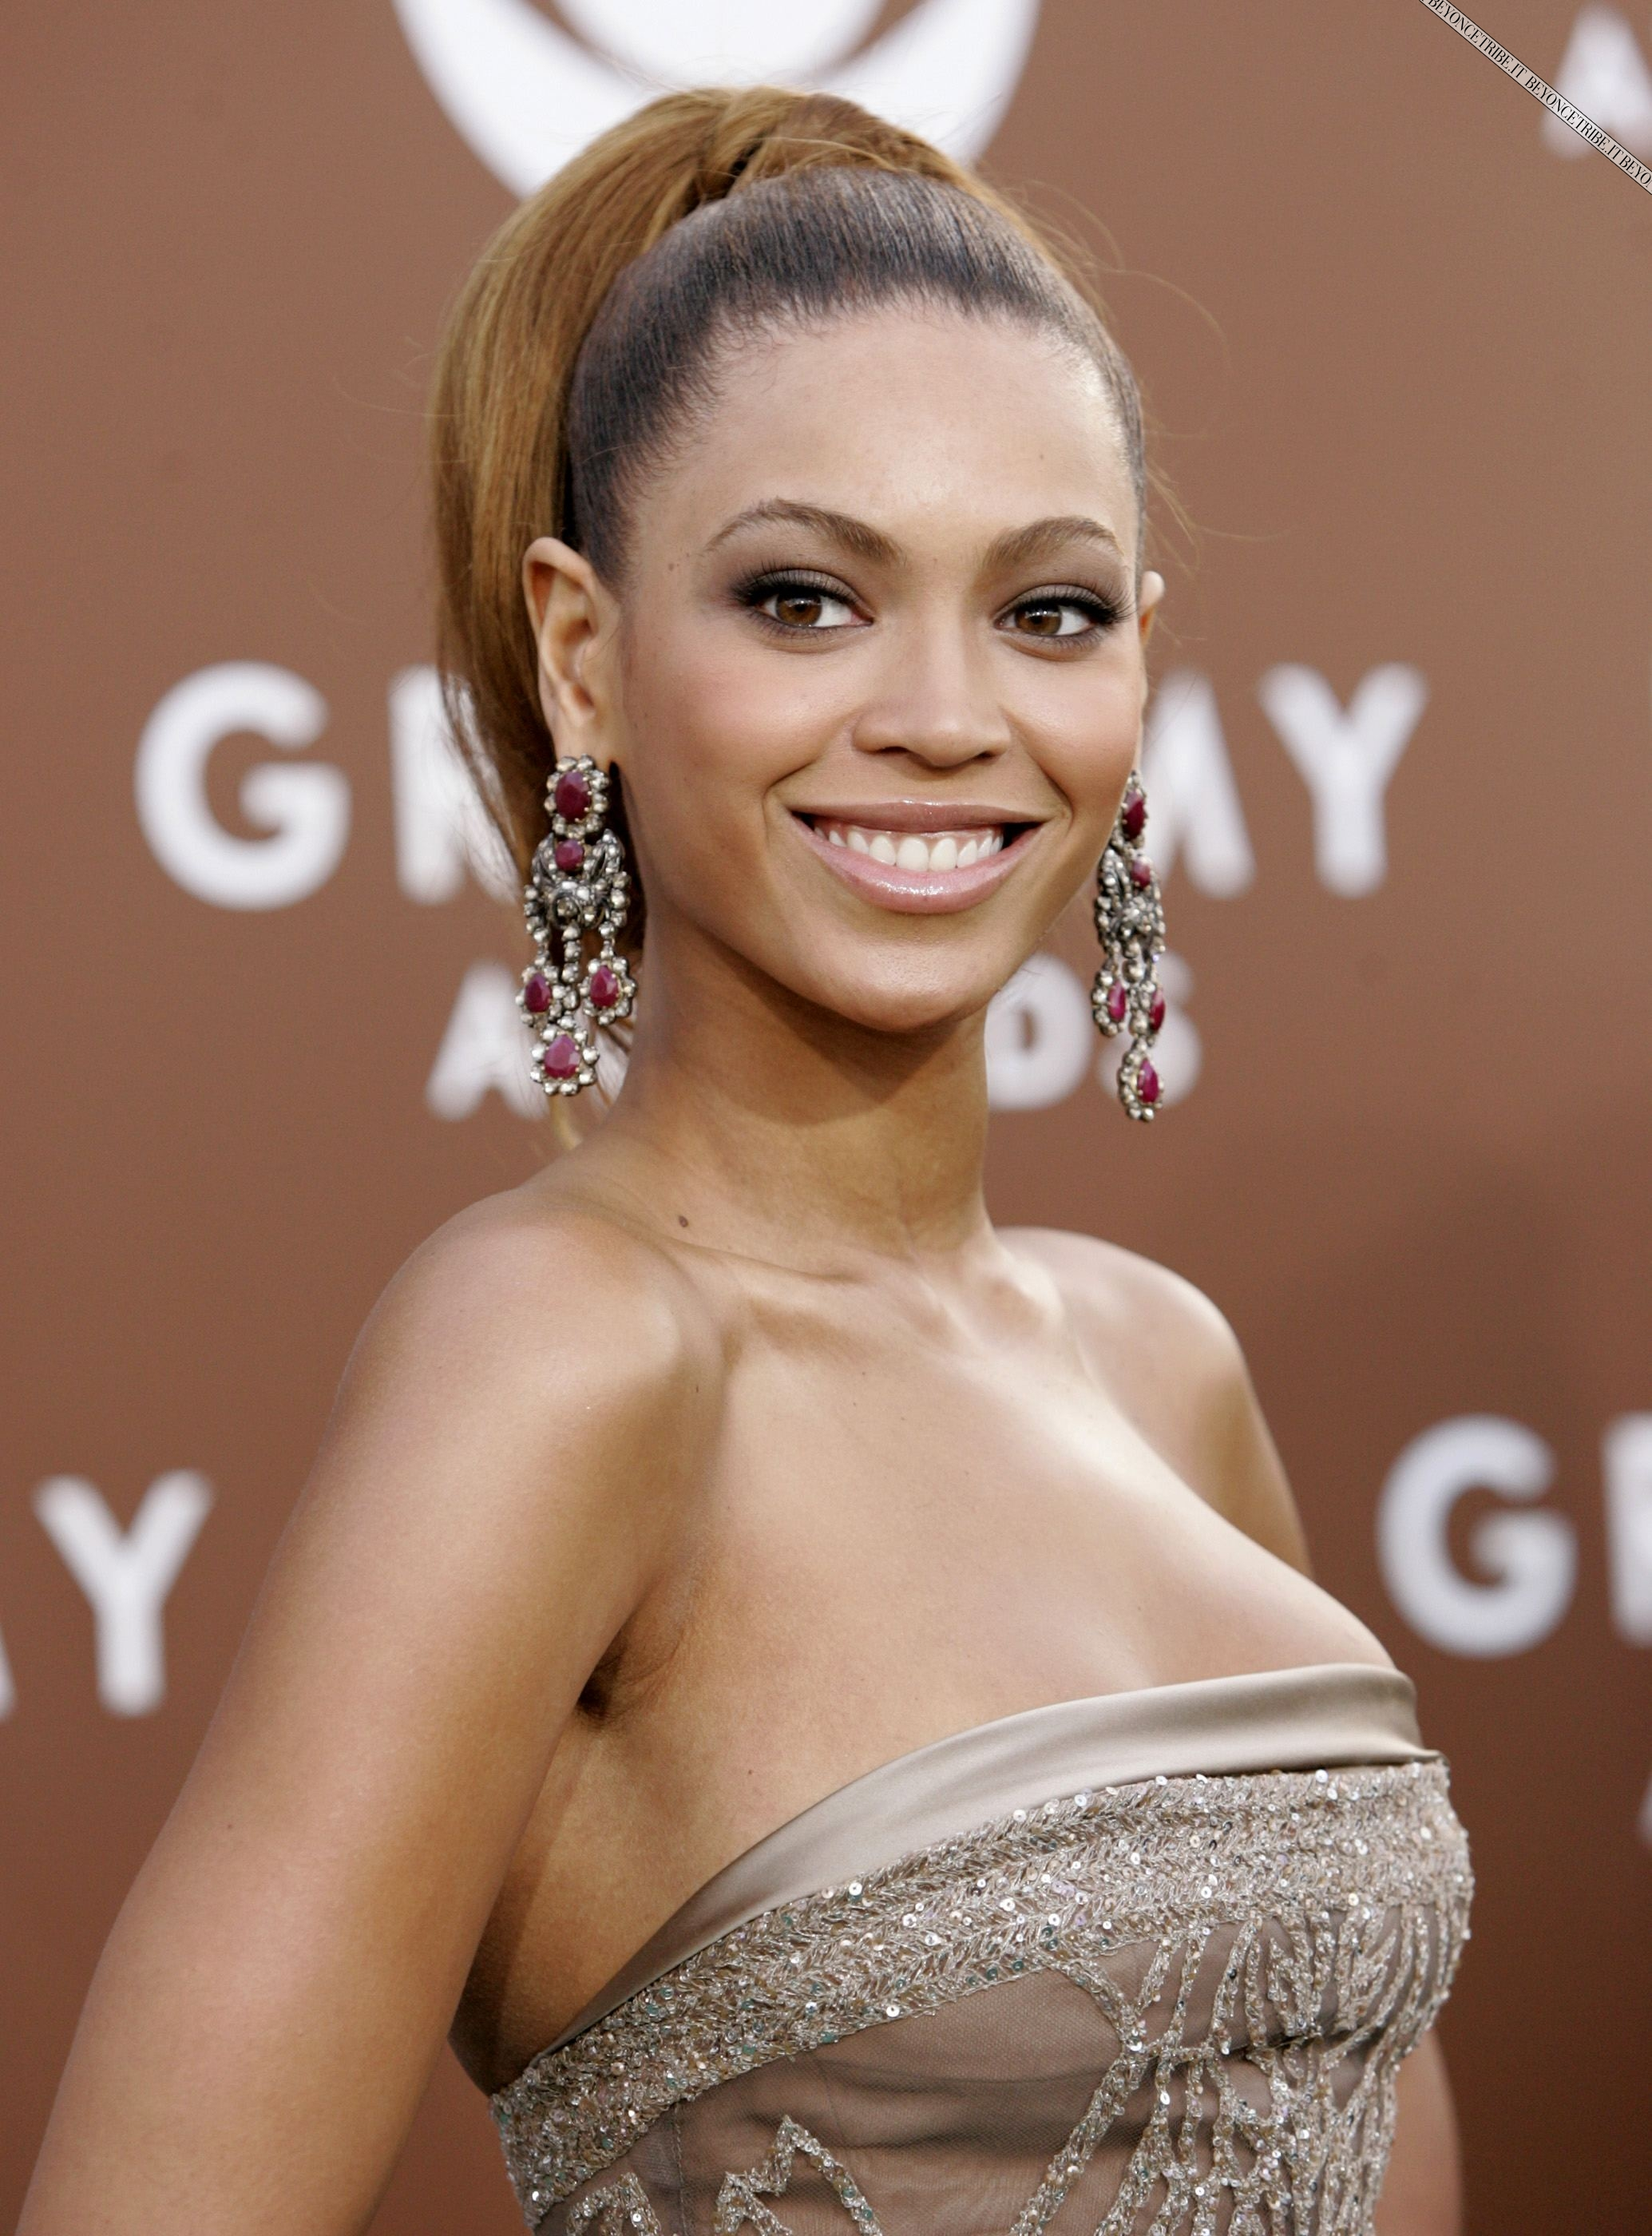 Singer Beyonce Knowles poses at Grammy Awards in Los ...